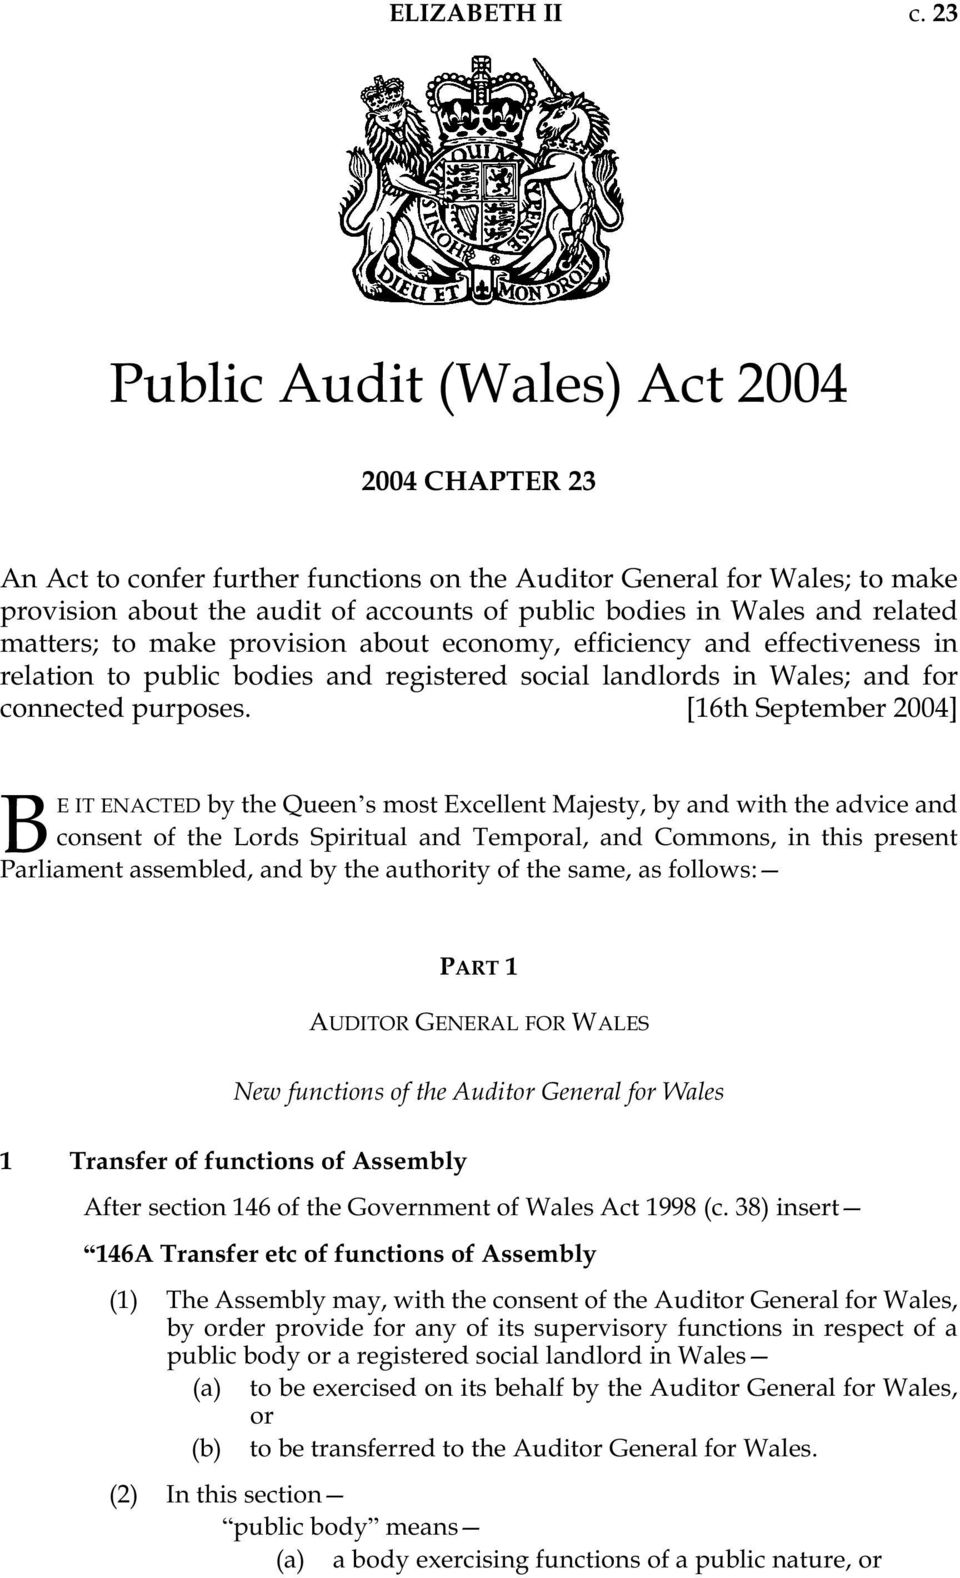 related matters; to make provision about economy, efficiency and effectiveness in relation to public bodies and registered social landlords in Wales; and for connected purposes.